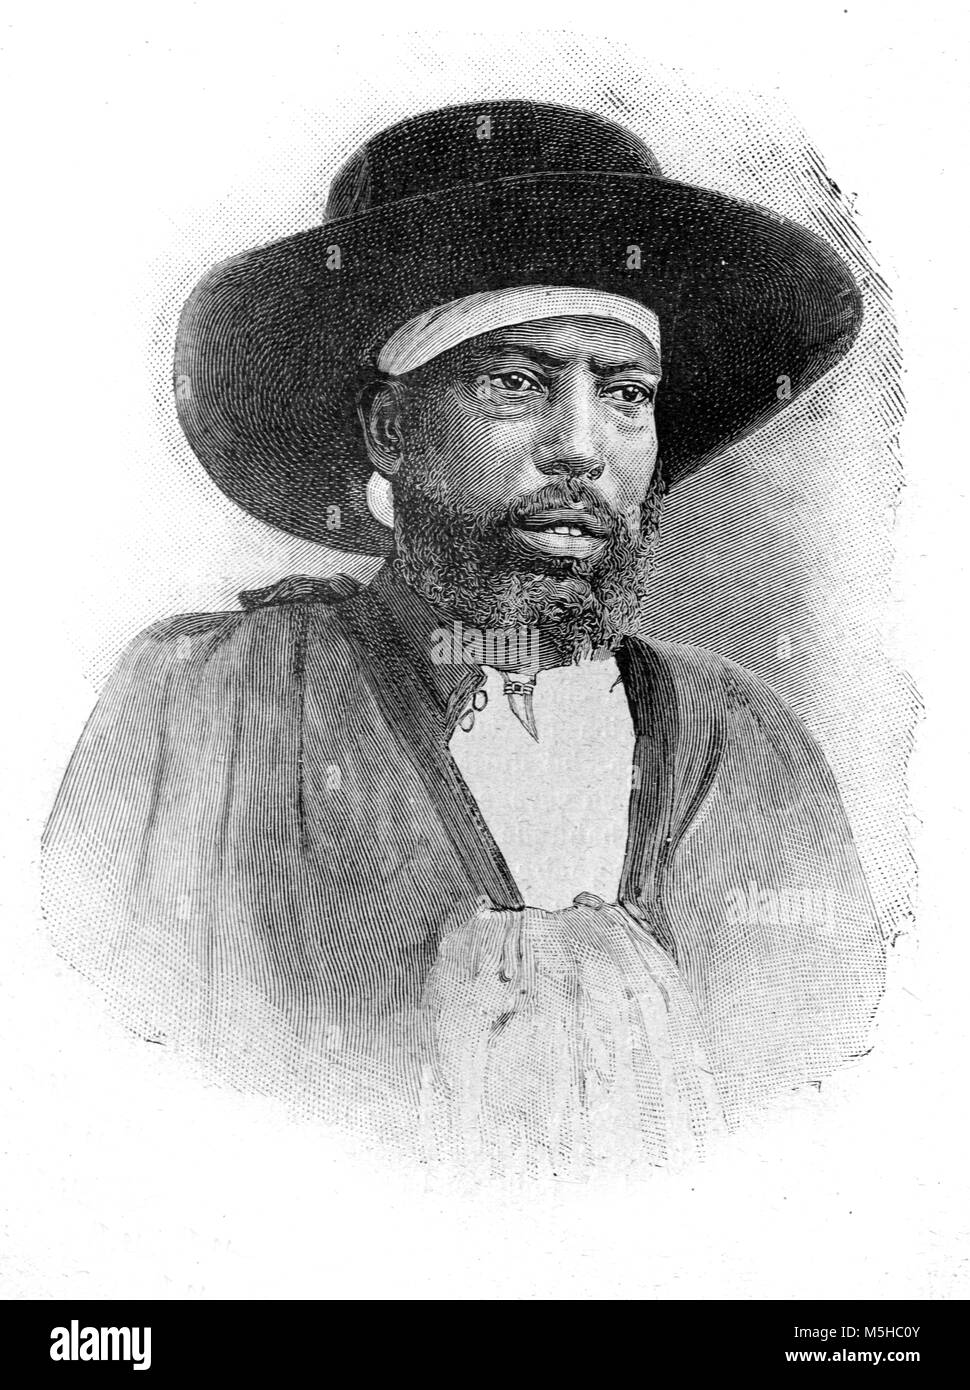 Portrait of Menelik II (1844-1913), Negus or King of Shewa (1866-1889) and Emperor of Ethiopia (1889-1913) (Engraving, - Stock Image